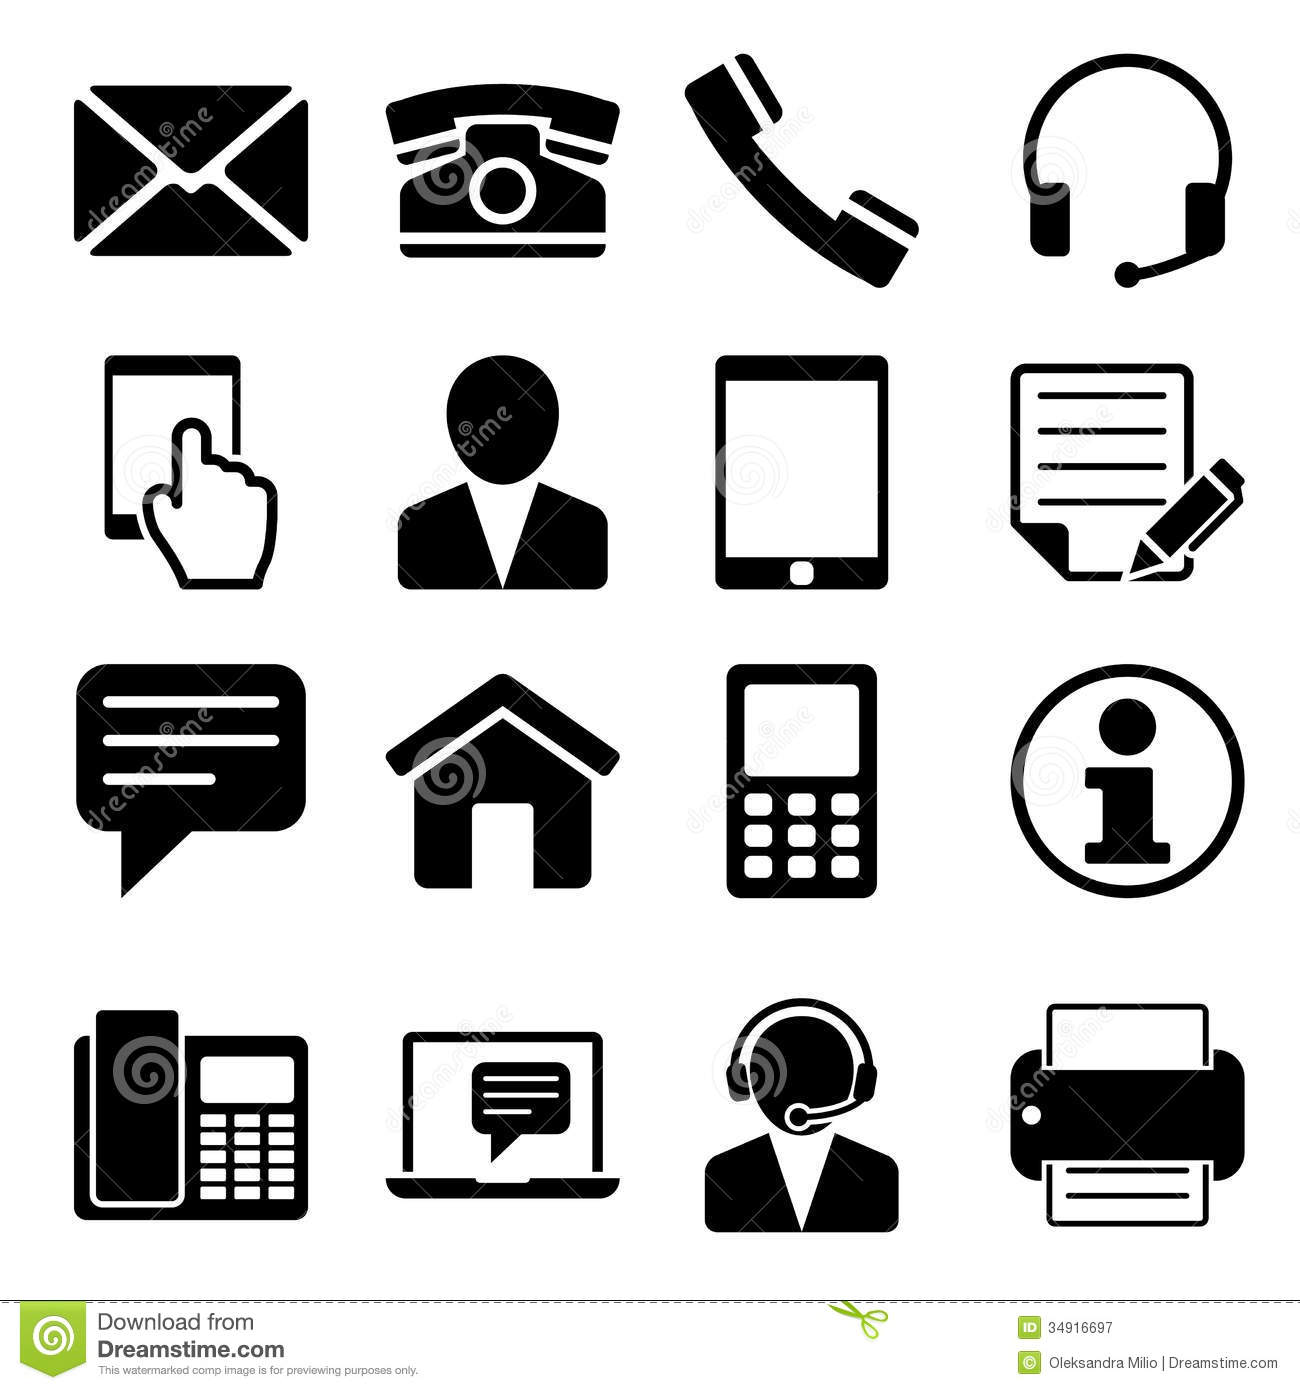 Stock Image Hand Drawn Matron Illustration Image35042291 furthermore Stock Photography Same Sex Family Icons Gay Marriage Couples Black White Graphic Style Image40710252 also Royalty Free Stock Photography Contact Us Icons Set File Eps Format Image34916697 also Stock Illustration Oak Tree Sketch Illustration Eps Hand Drawn Pencil Isolated White Background Image42107589 likewise Stock Illustration Retro Bmx Line Art Illustration Bicycle Image41416997. on us map vector eps